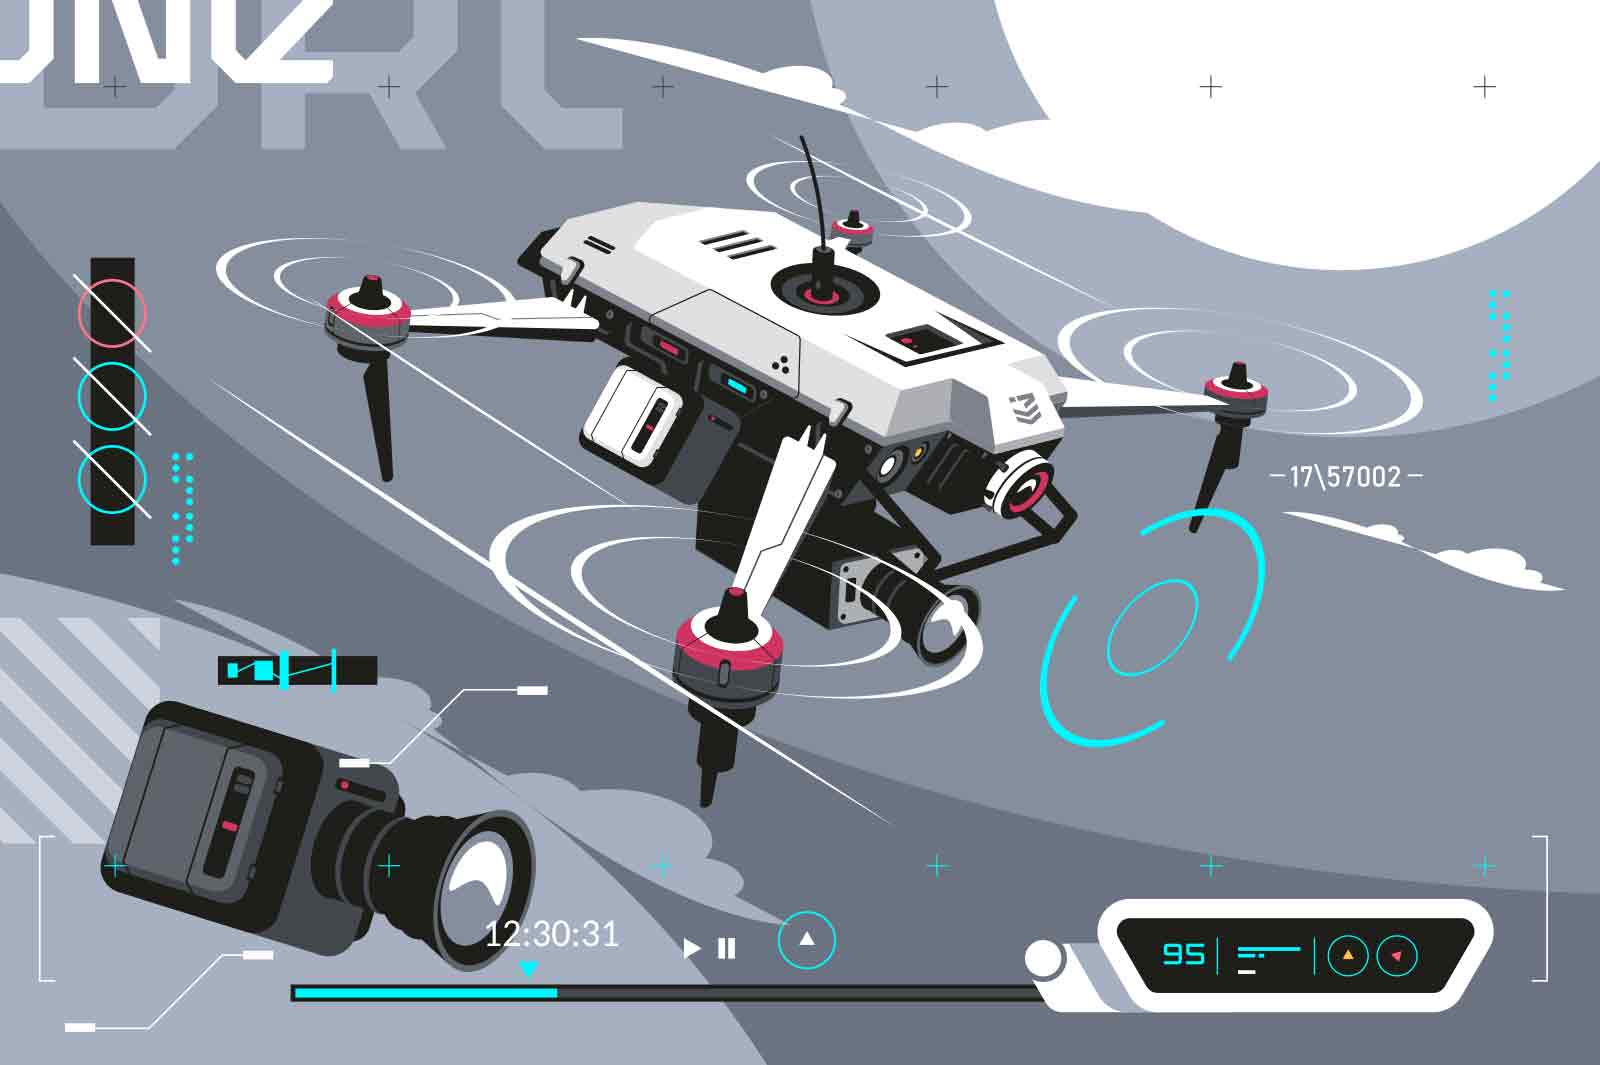 Smart drone shooting with camera vector illustration. Quadcopter flying and recording video flat style. Aerial photography, videography, smart tech, innovation concept. Grey background